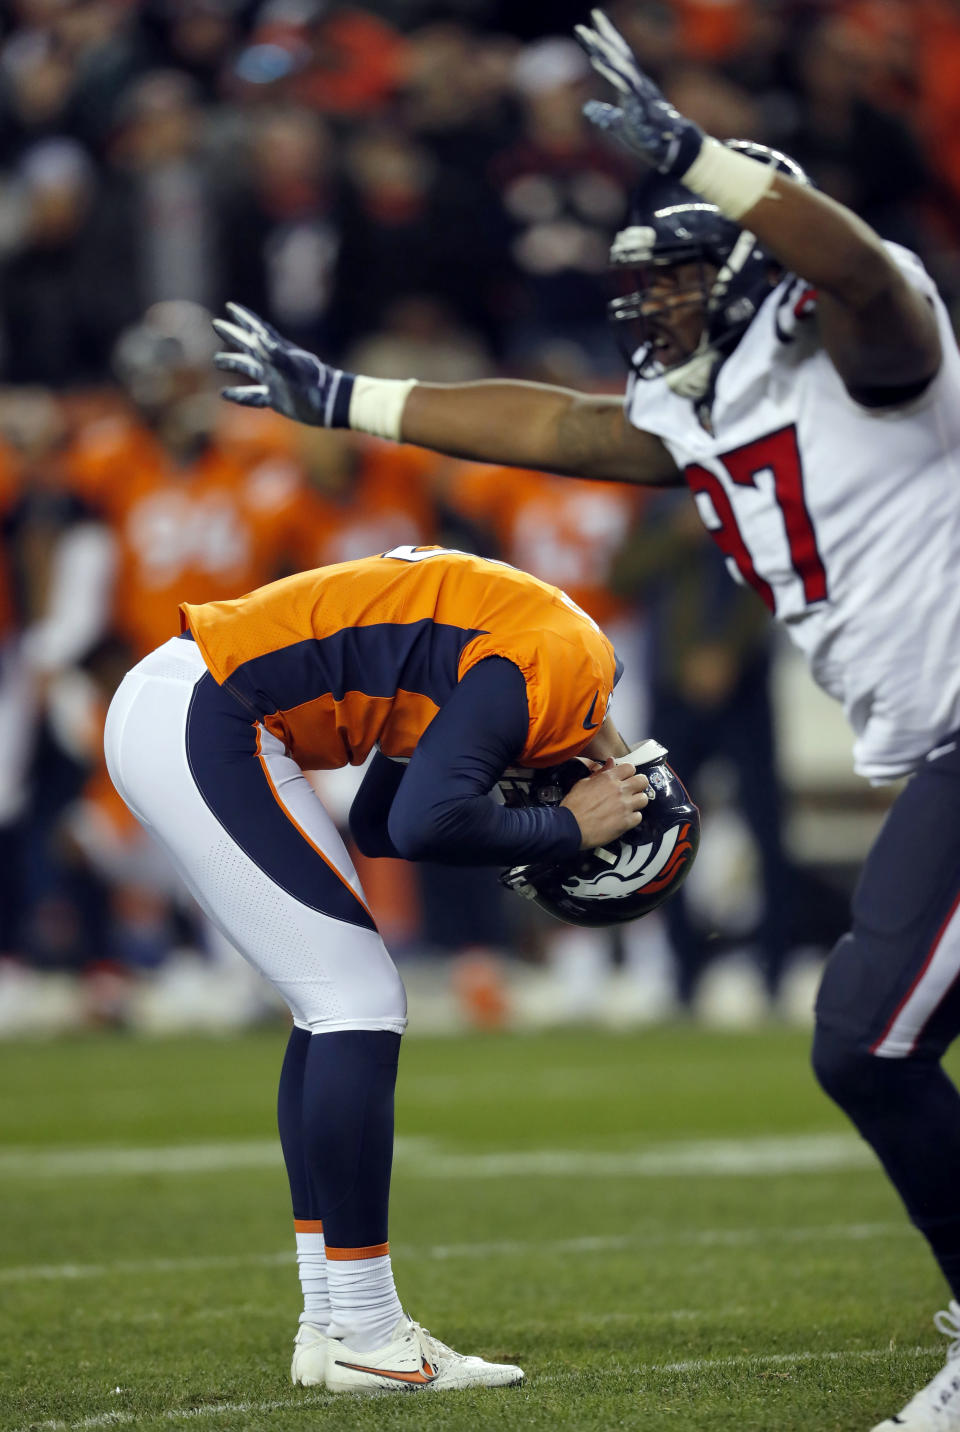 Denver Broncos kicker Brandon McManus hangs his head after missing a game winning field goal attempt as Houston Texans defensive end Angelo Blackson (97) celebrates during the second half of an NFL football game, Sunday, Nov. 4, 2018, in Denver. The Texans won 19-17. (AP Photo/David Zalubowski)